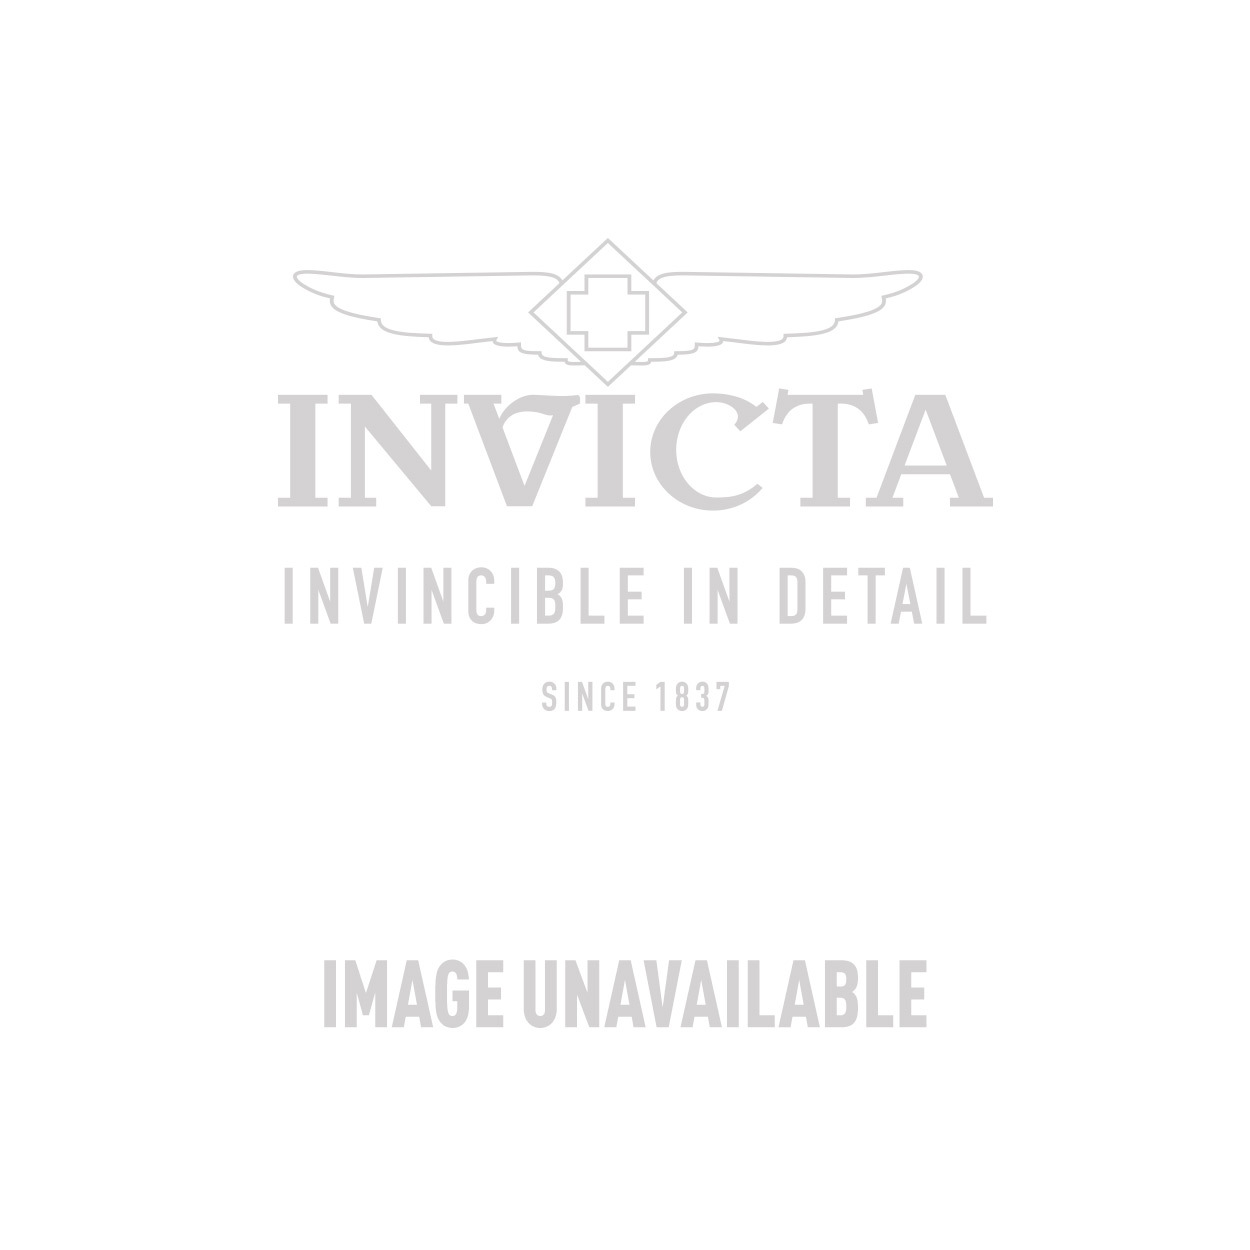 Invicta Corduba Mechanical Watch - Gold, Gunmetal case with Brown tone Polyurethane band - Model 80096